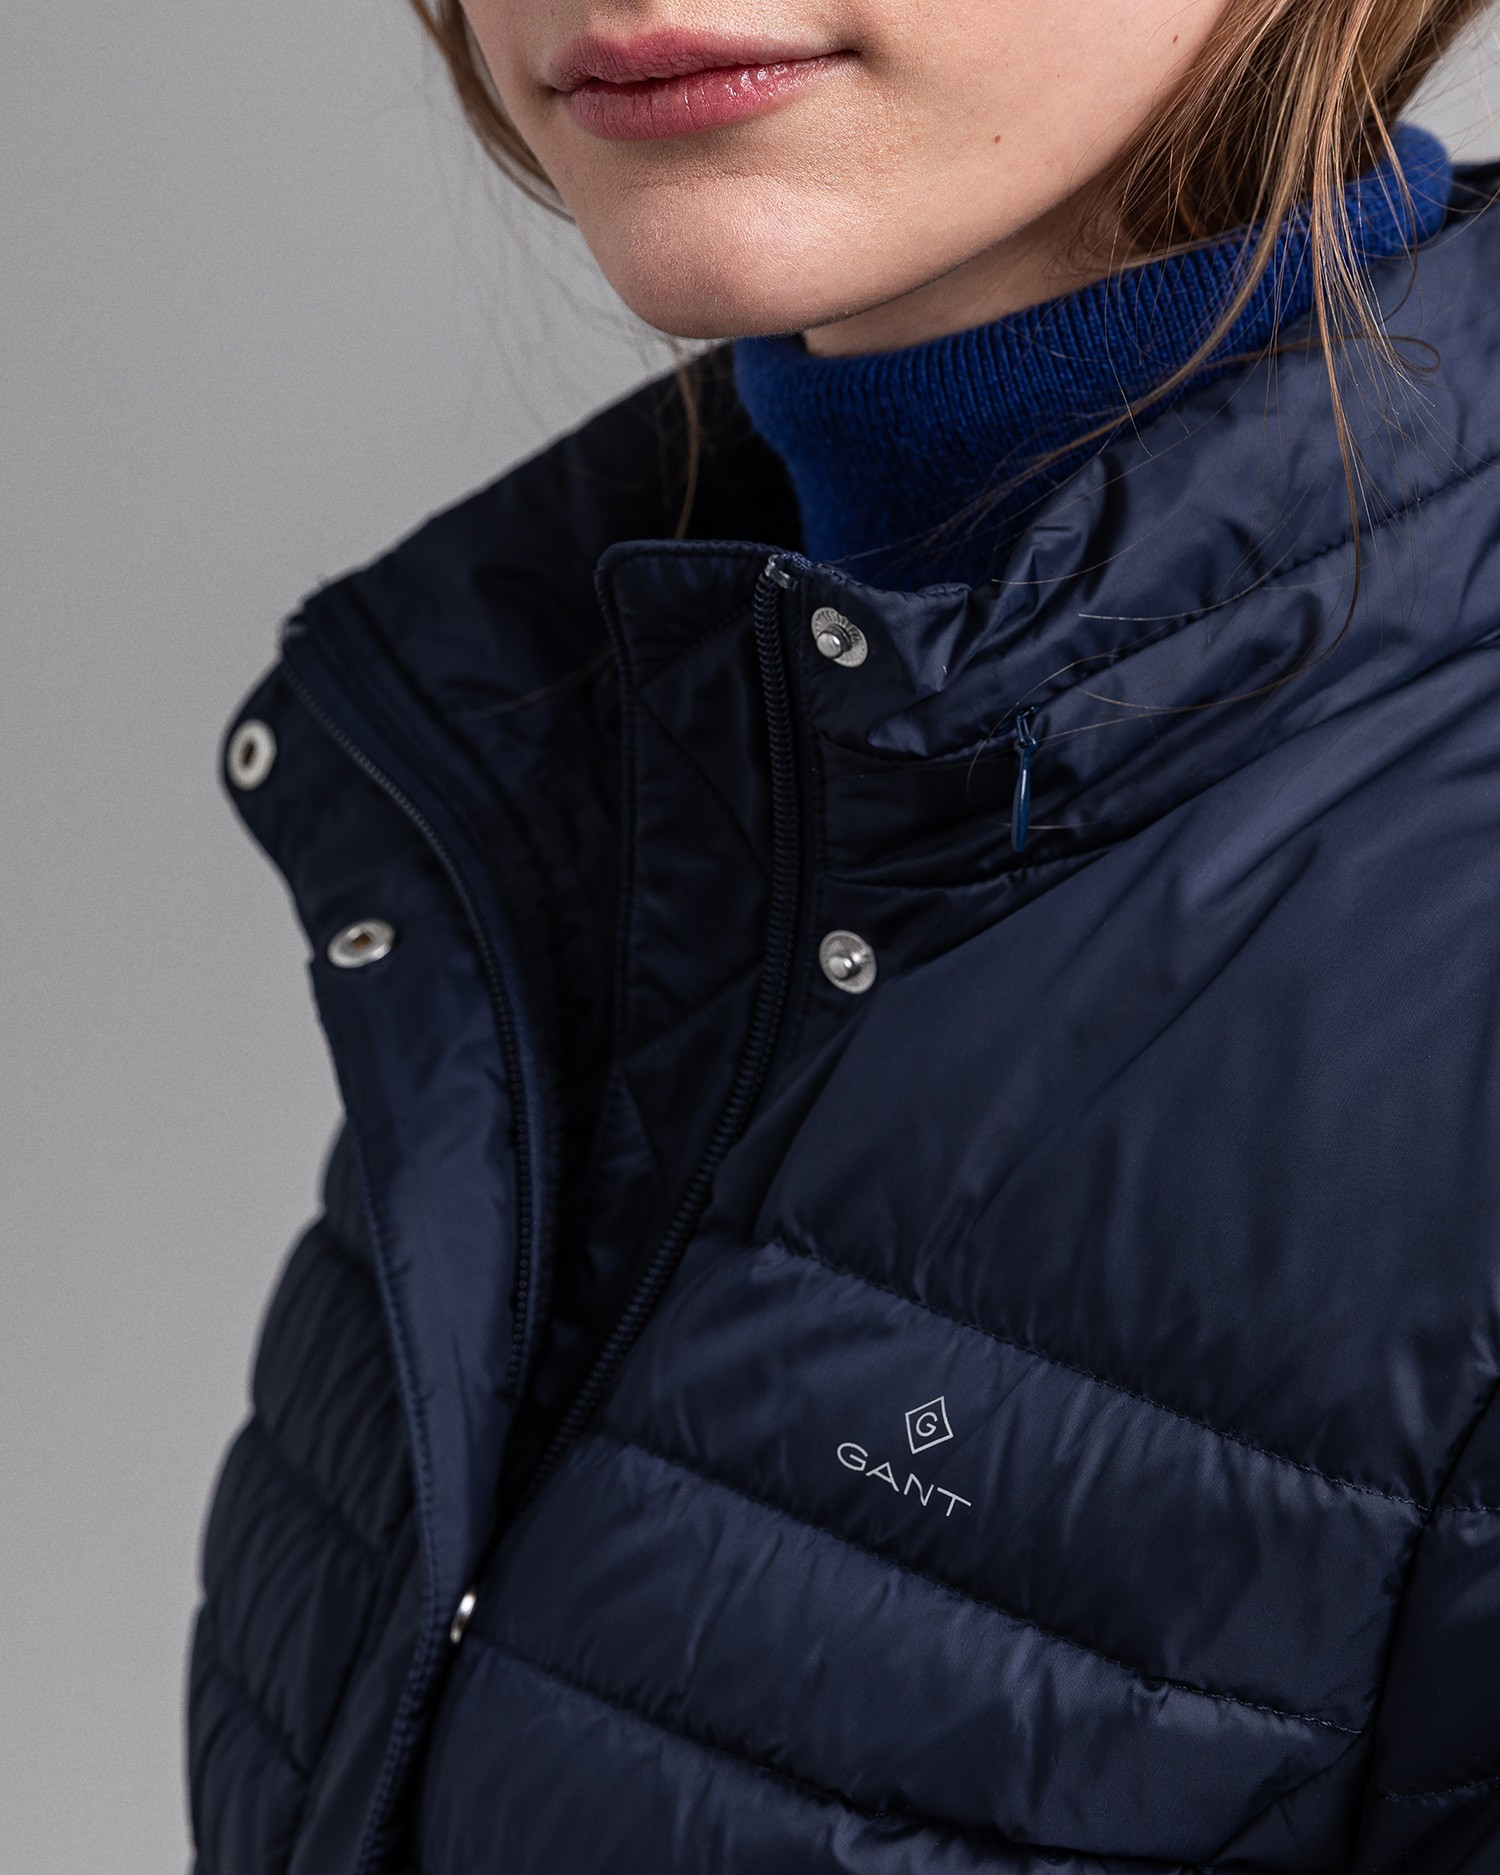 GANT Women's Light Down Jacket - 4700132